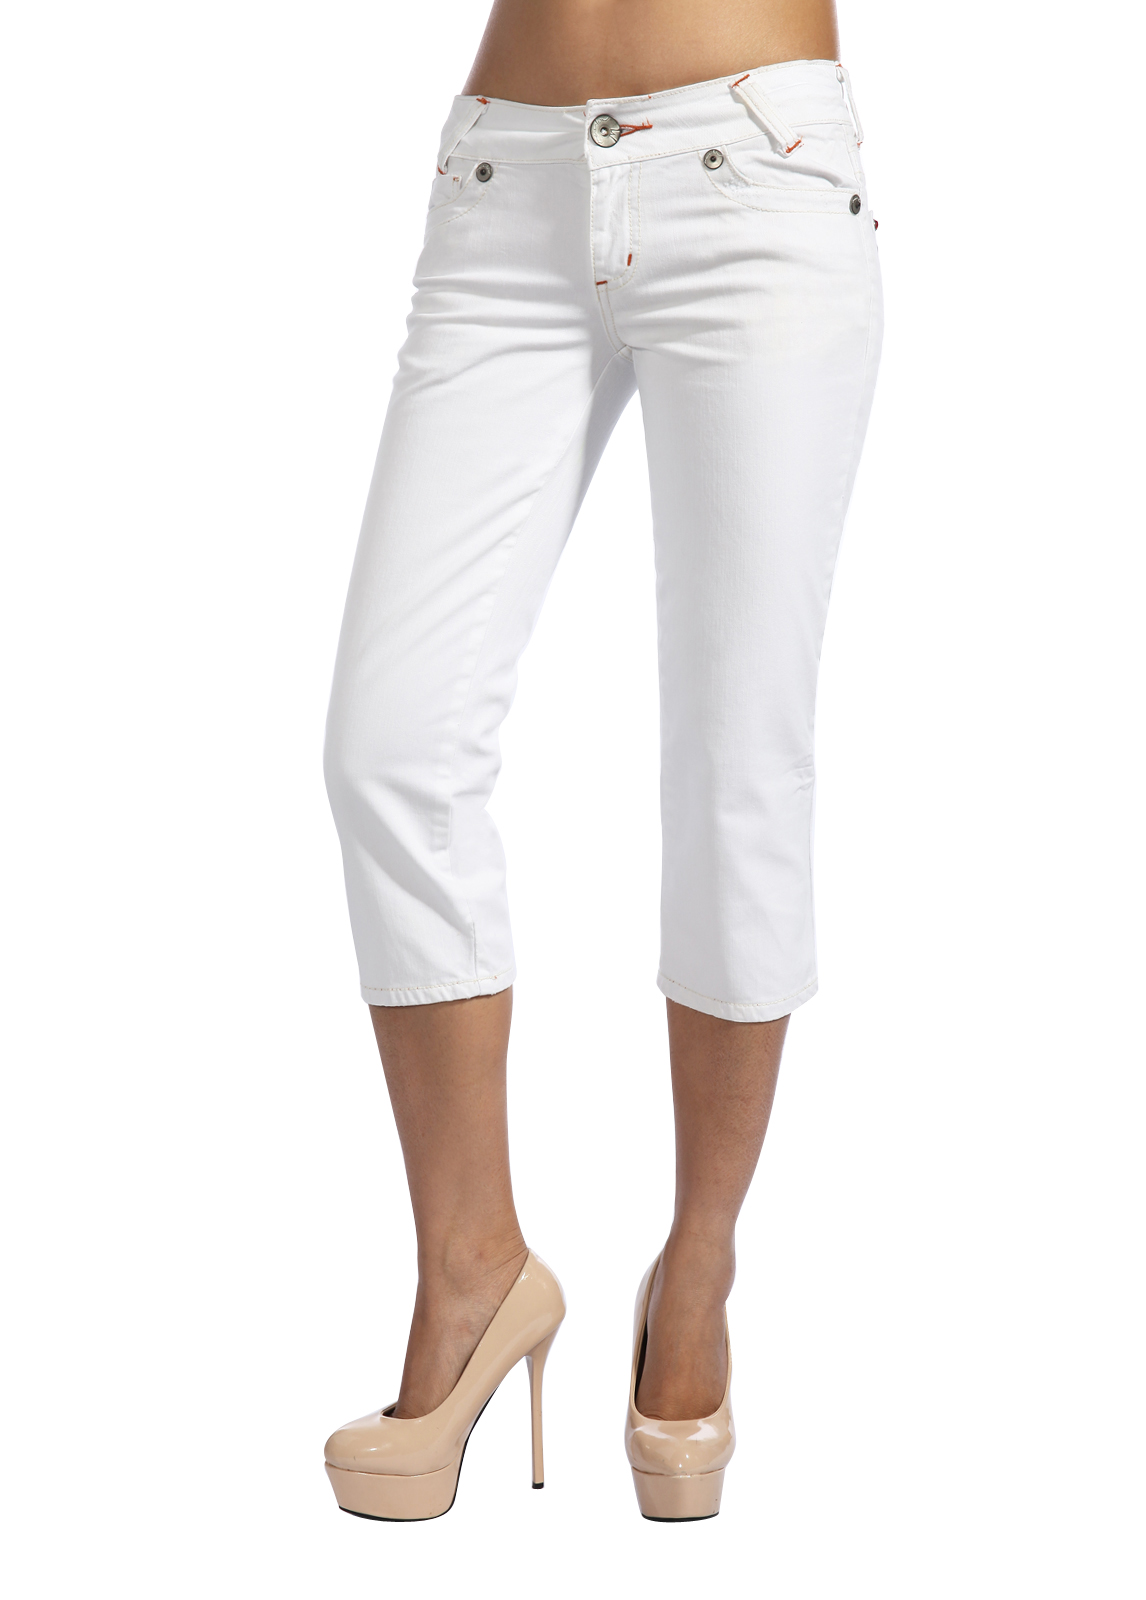 Marlow Womens Cropped Capri Jeans Low Rise 3/4 Shorts White Blue ...